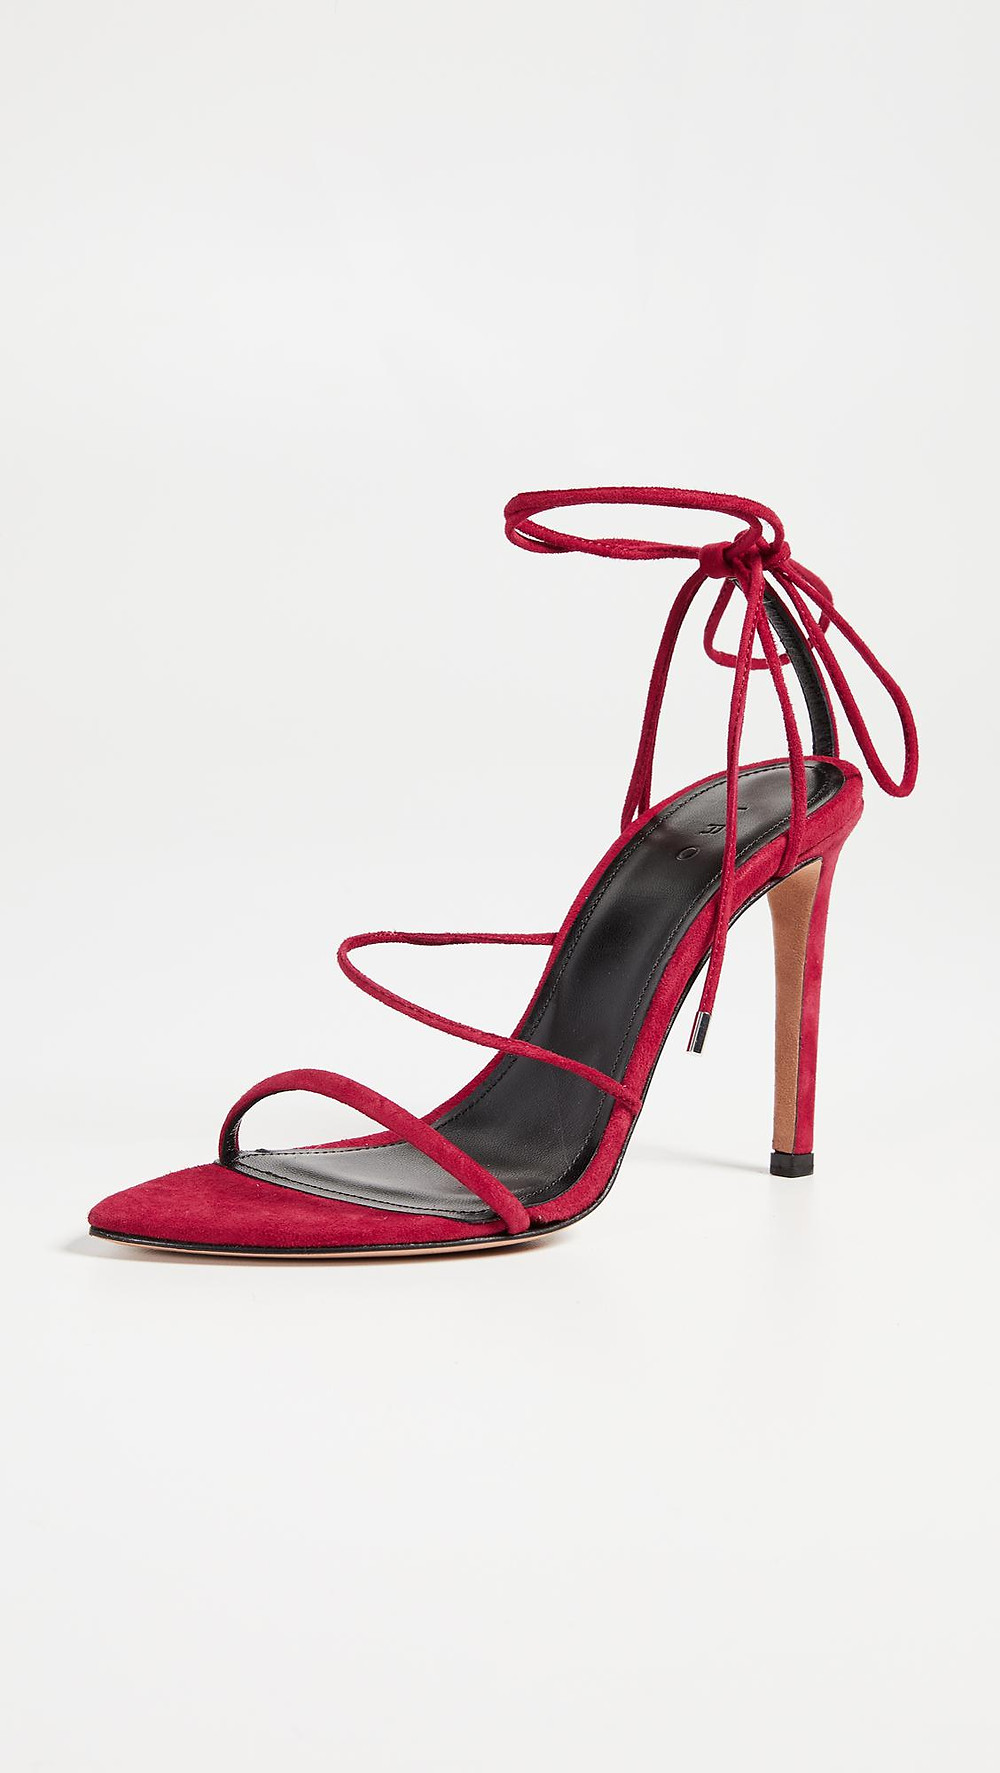 Iro Suede Point Toe Stiletto Red Sandal